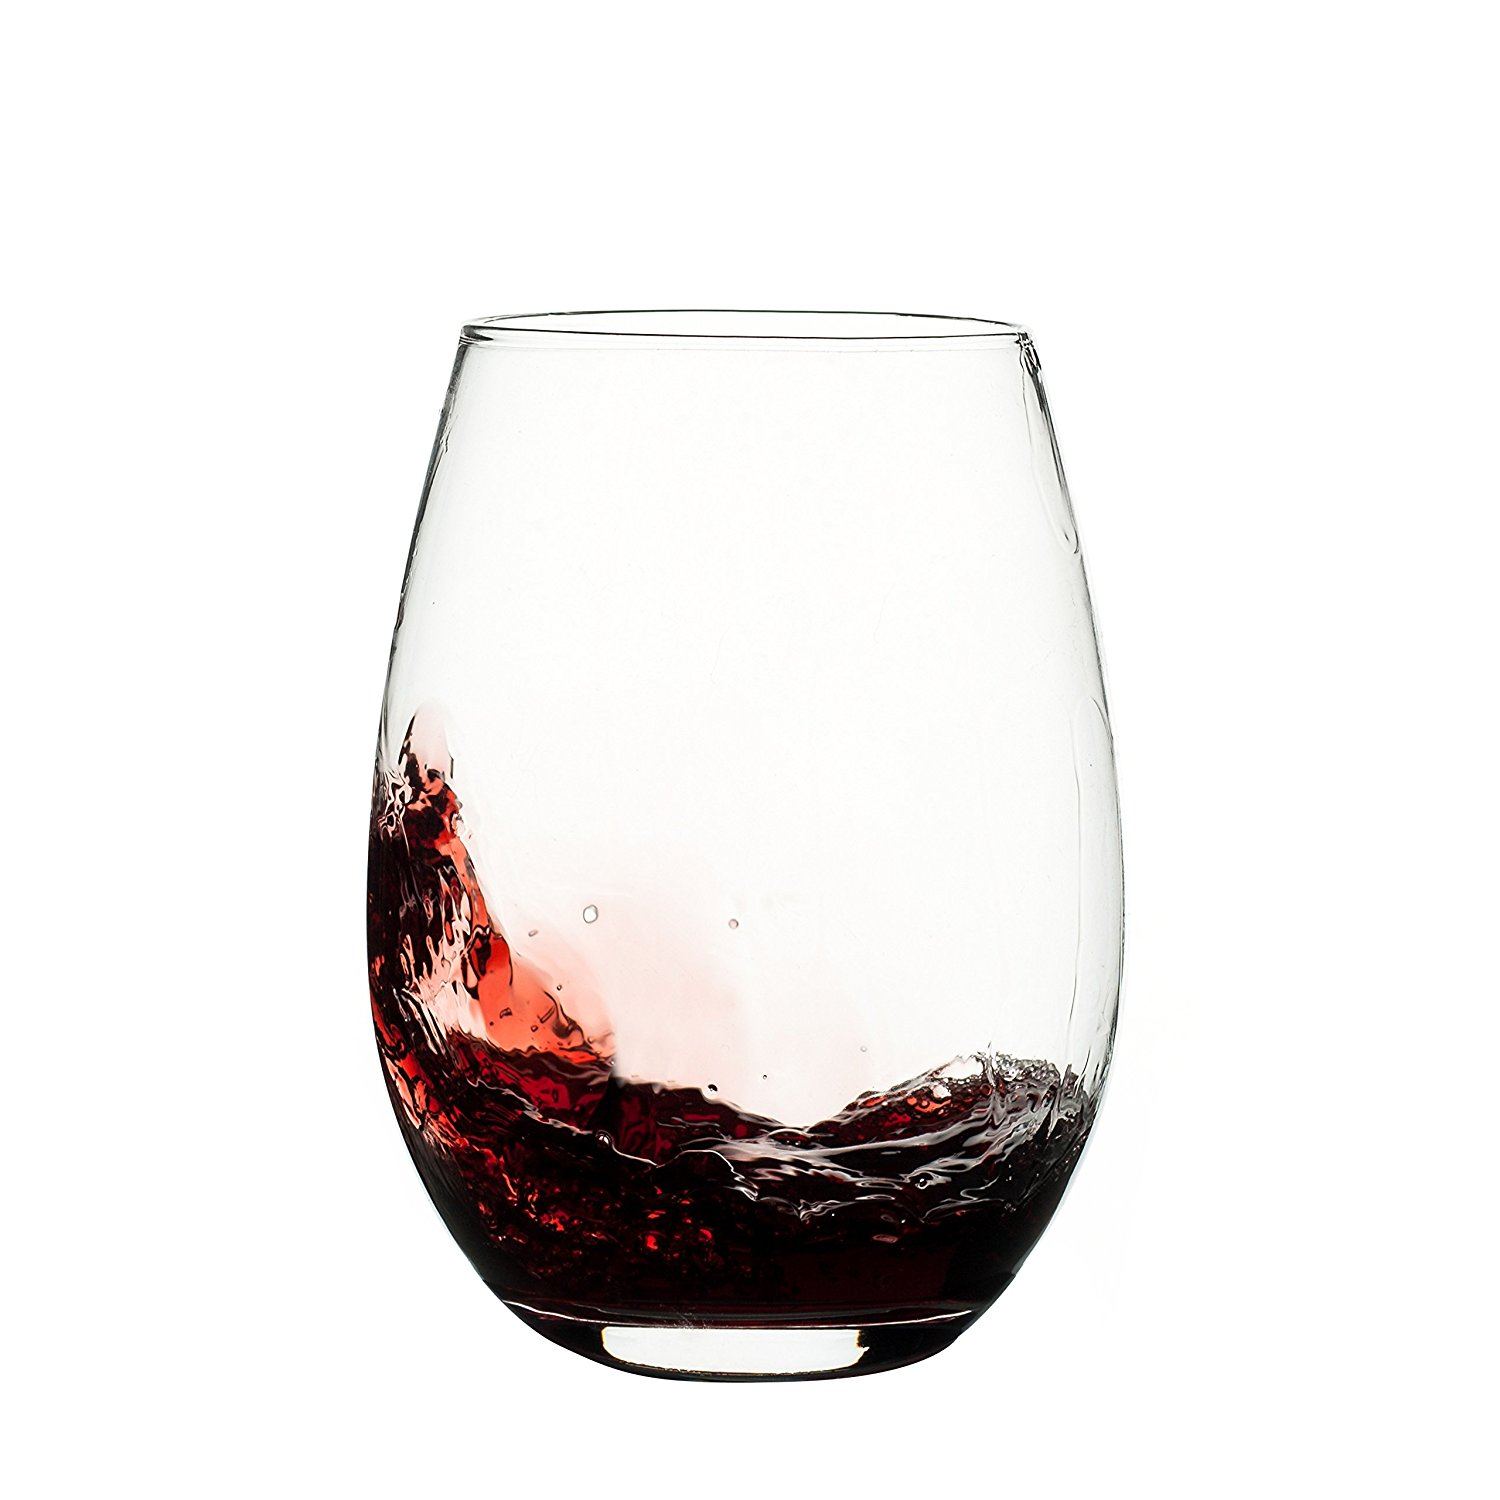 Large Crystal Wine Glasses Set Of 4 Large 20 Oz Eravino Stemless Crystal Wine Glasses